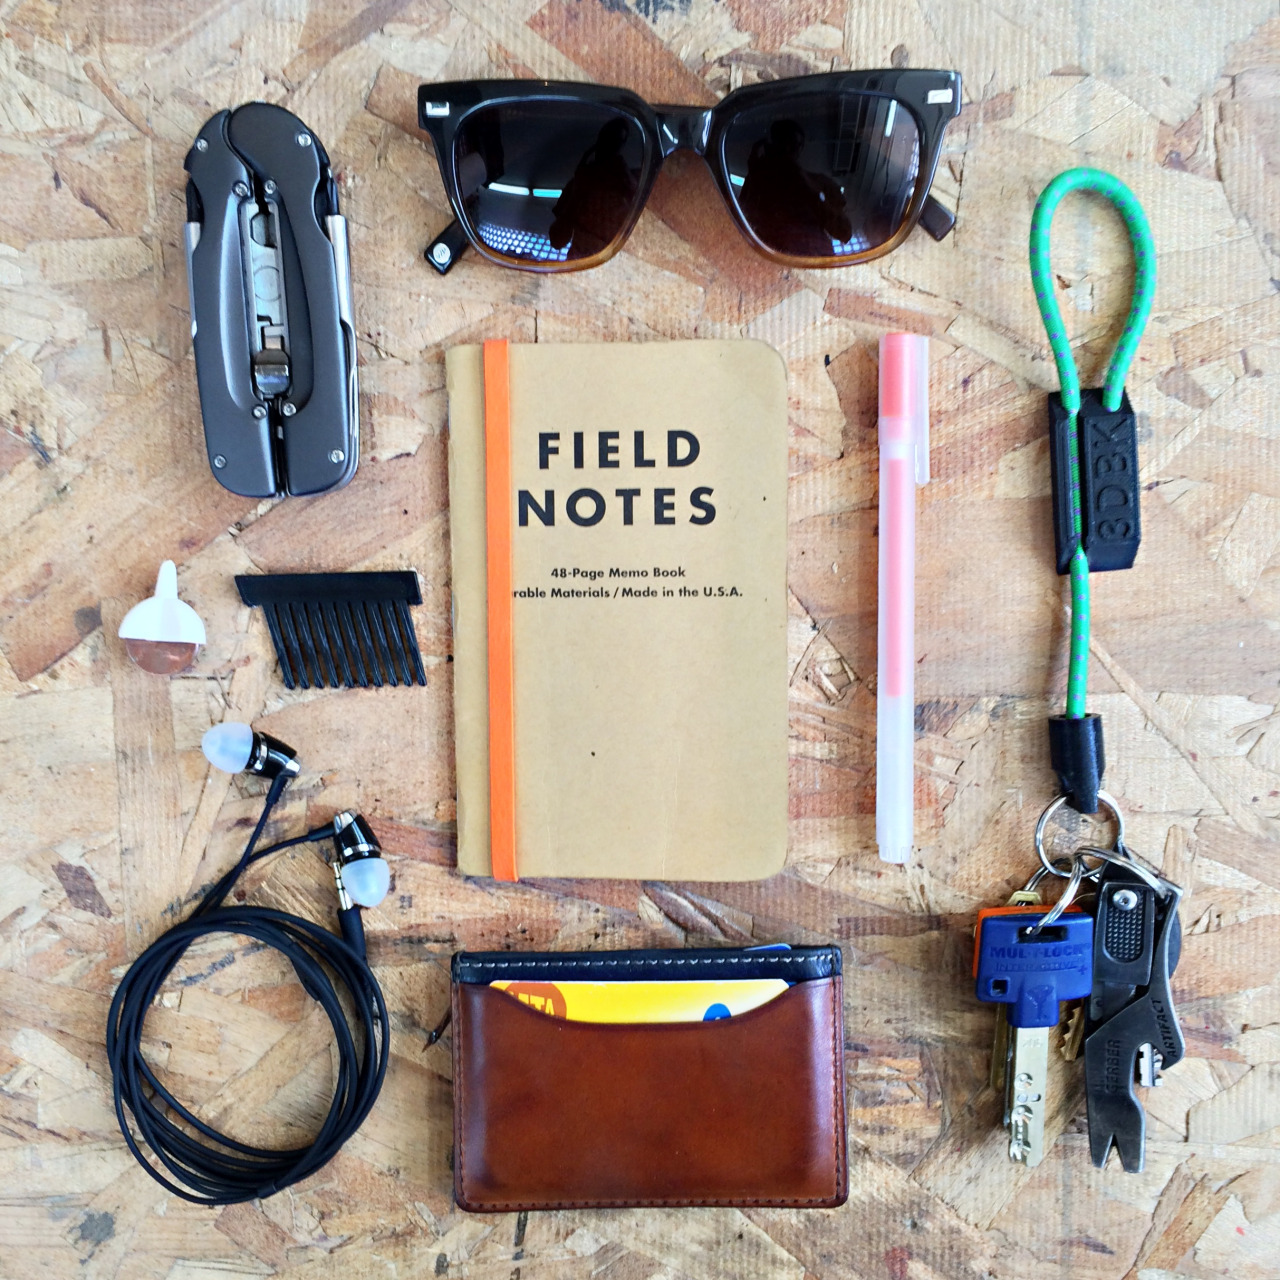 everydaycarry: Gerber Balance Multitool ($42) Warby Parker Winston Sunglasses ($95+) 3DBrooklyn Bungee Carabiner ($11) Gerber Artifact ($10) 3DBrooklyn Spinning Top Business Card 3DBrooklyn Pocket Comb Field Notes Notebook ($4) Muji Pen ($2) Klipsch Image S4 ($70) Jack Spade Mitchell Card Holder ($78) Designer/Creator, 3DBrooklyn in NYC, NY Read More